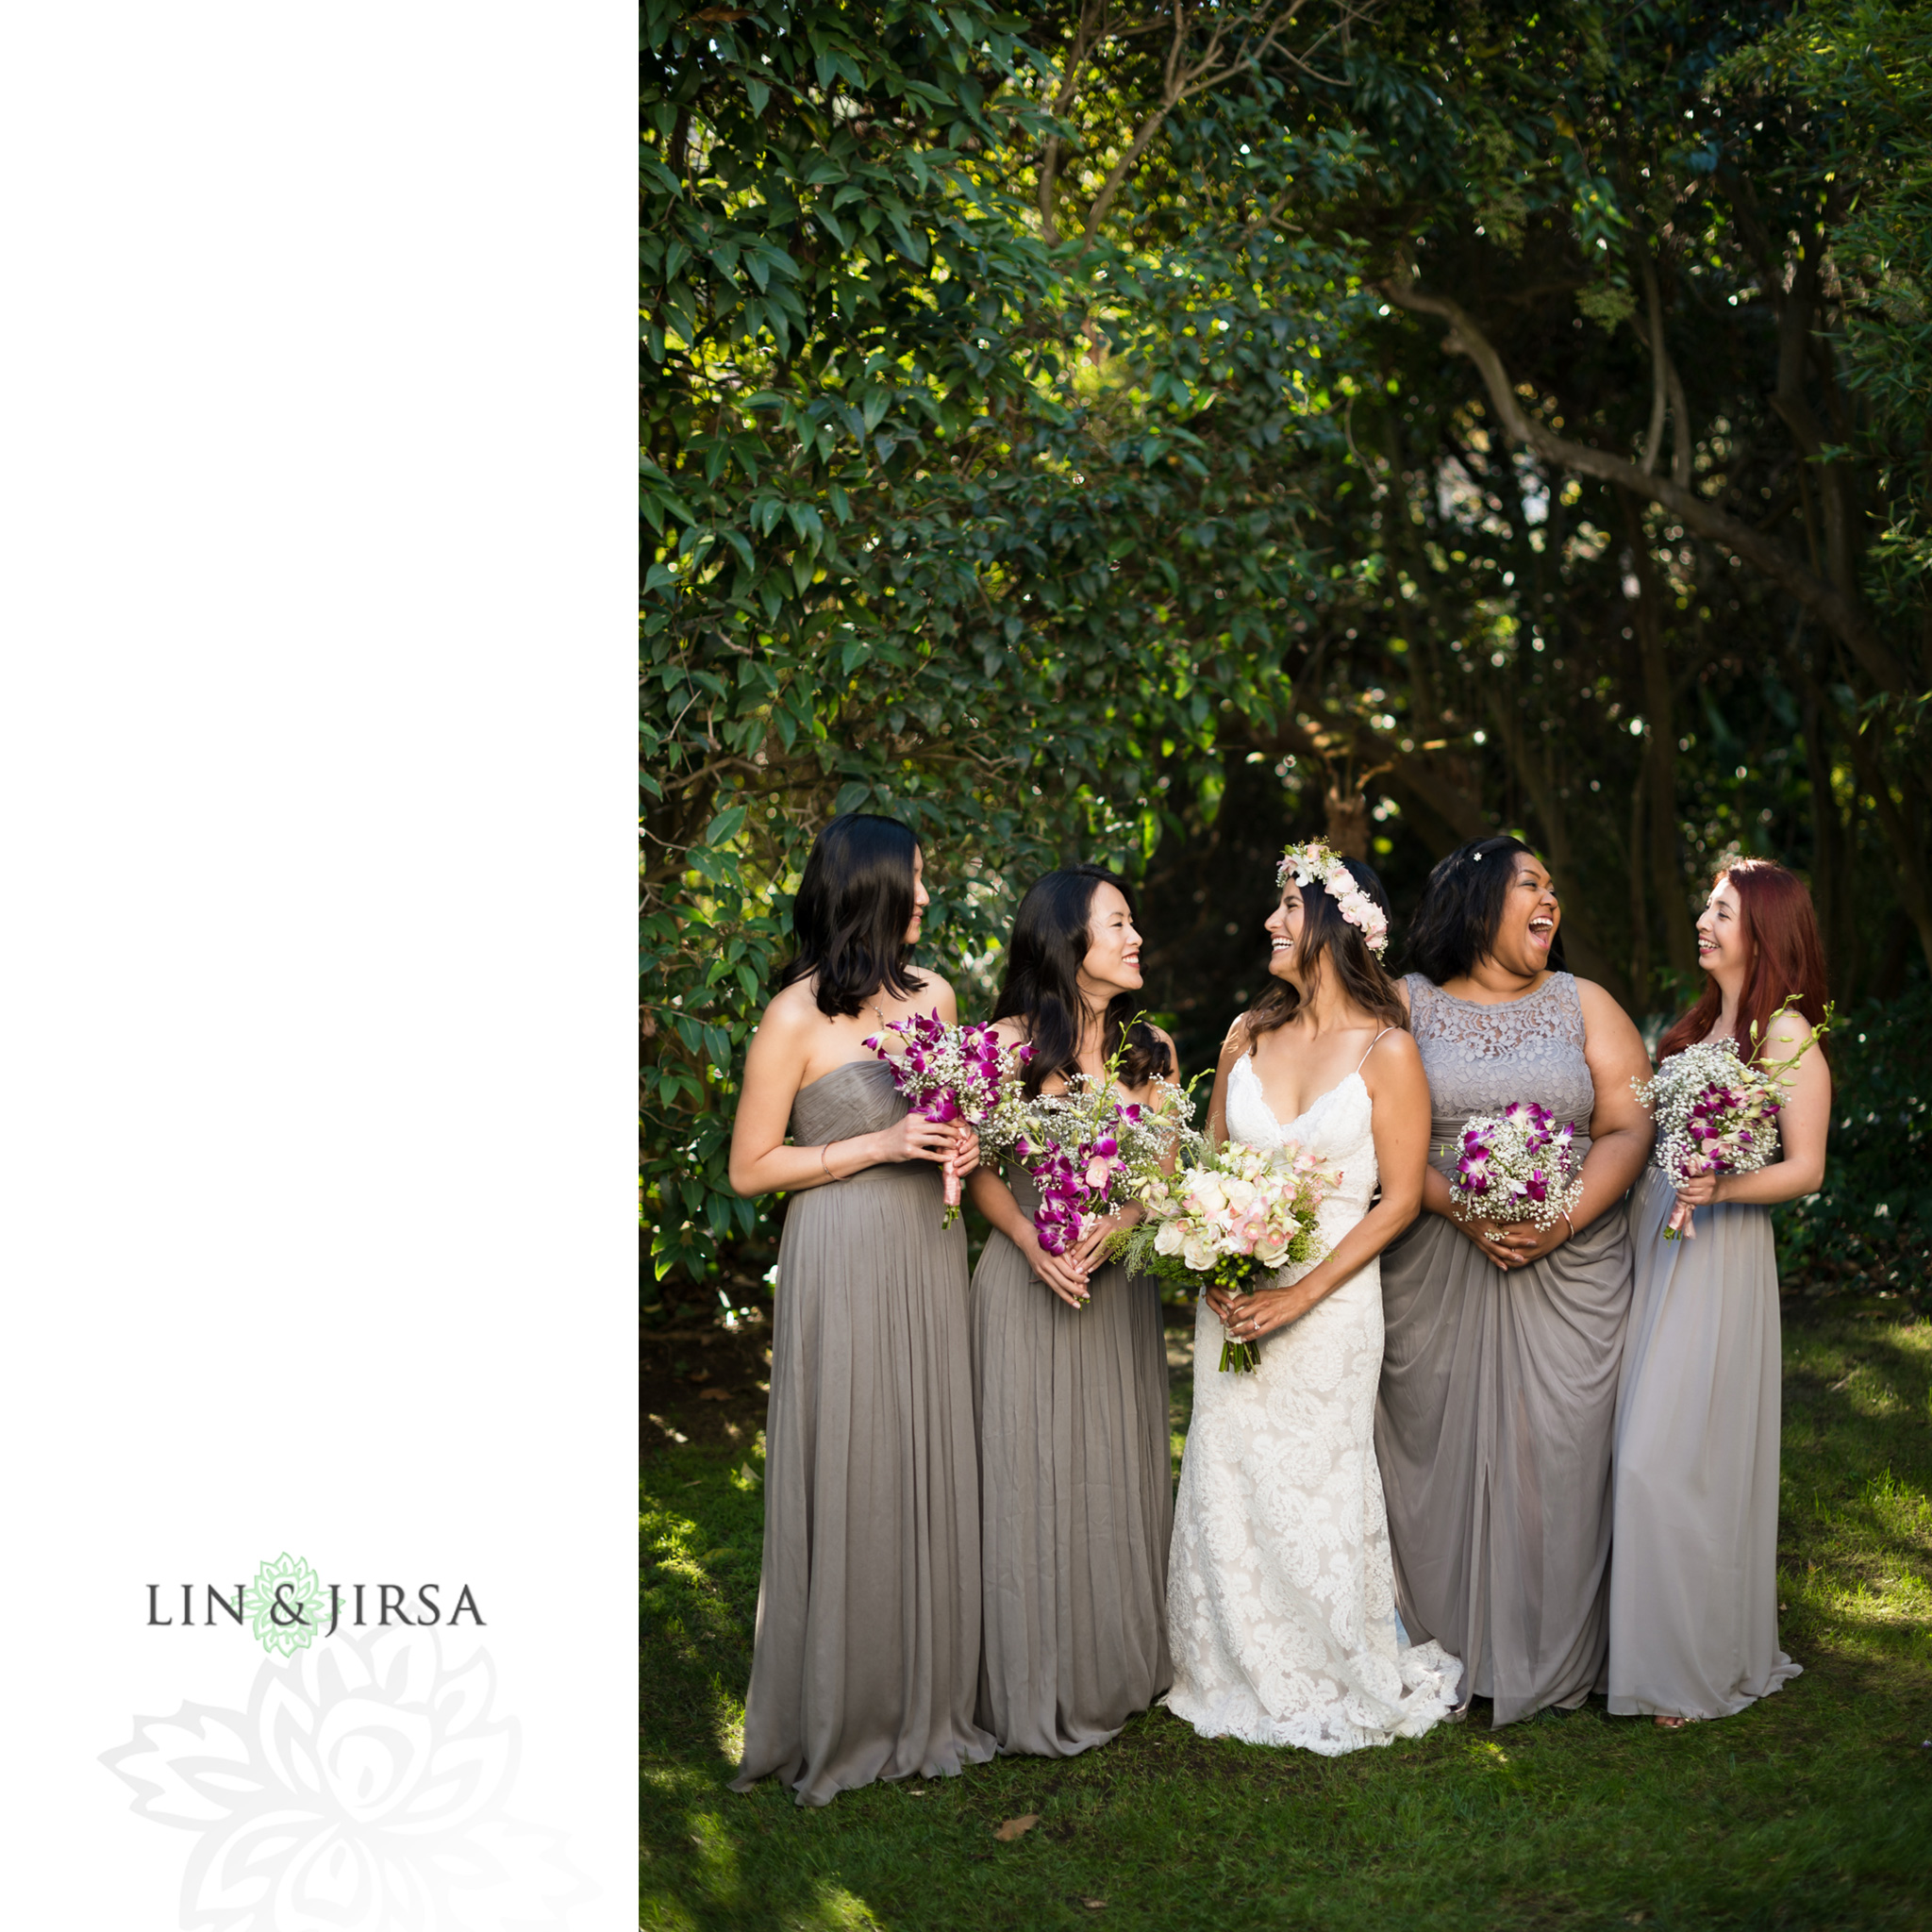 09-la-venta-inn-wedding-photography-ranchos-palos-verdes